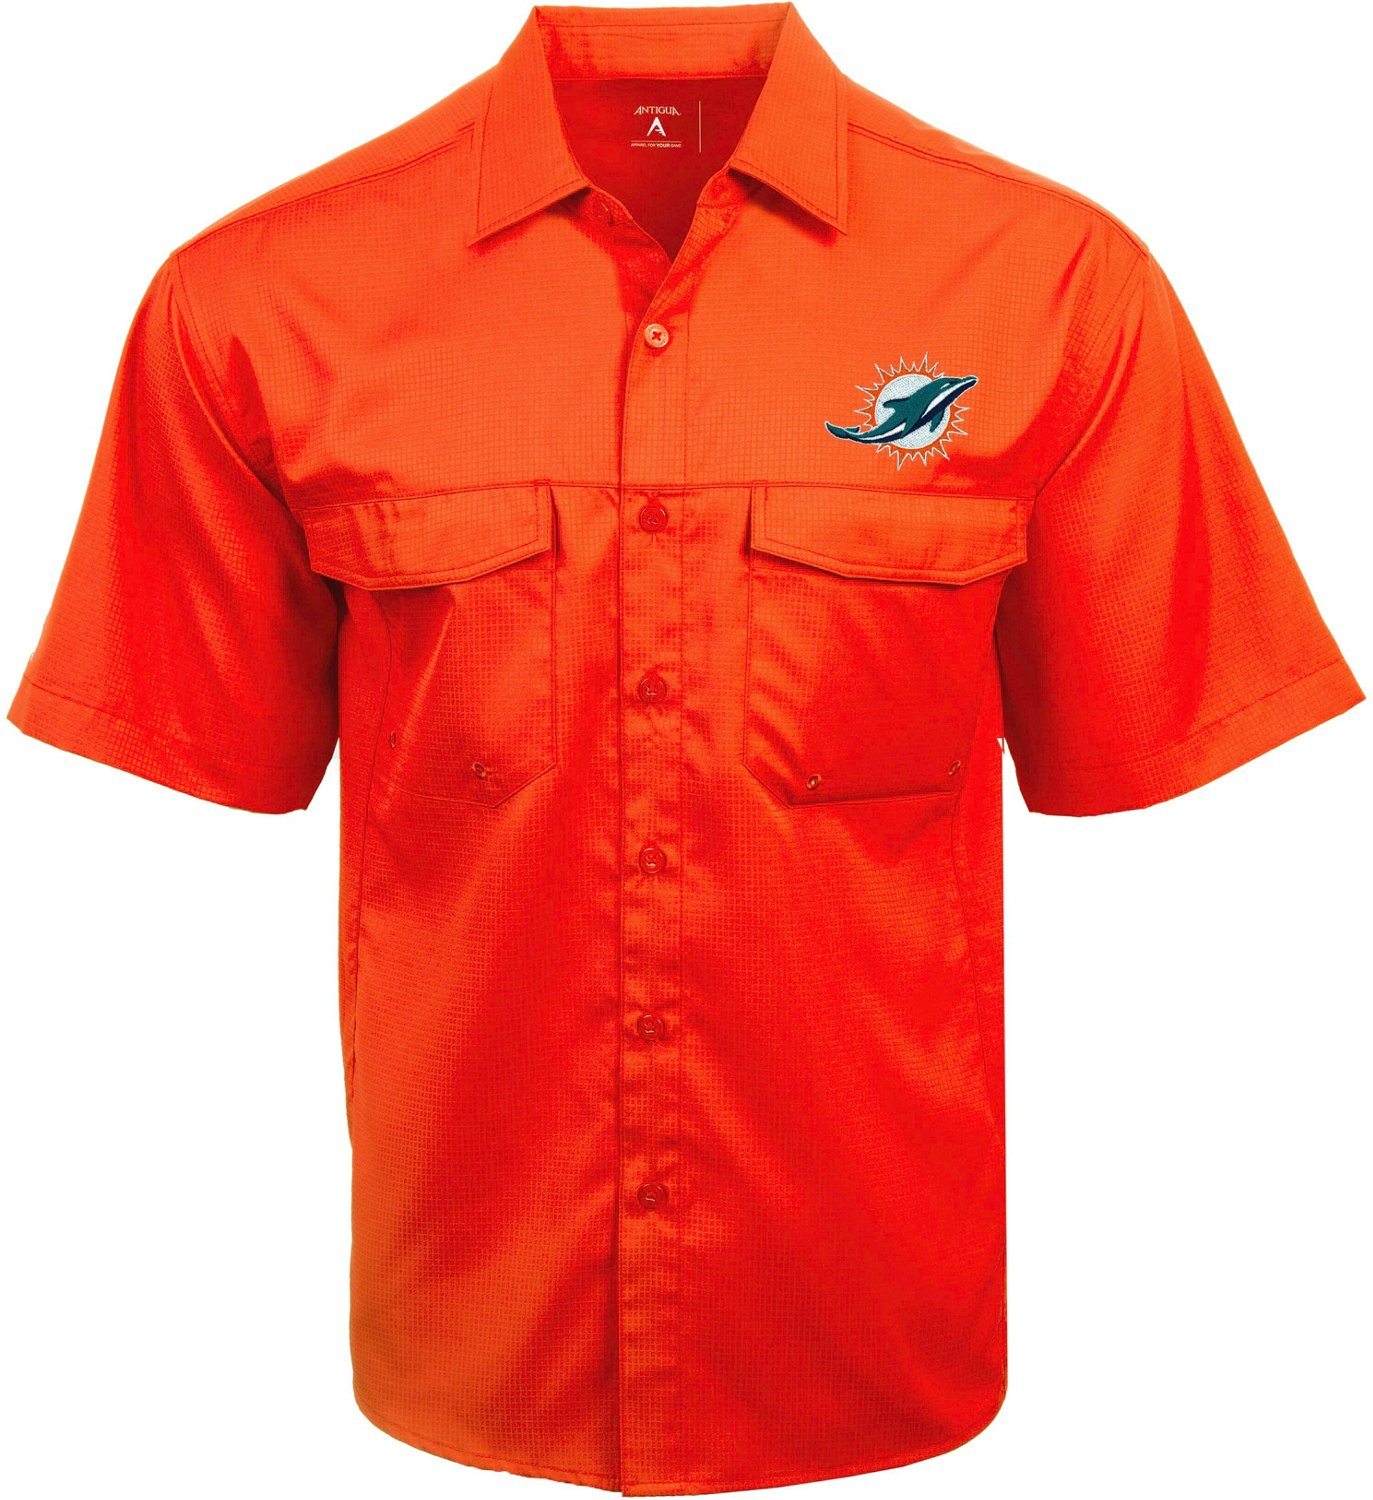 new concept 7ab73 0824f Antigua Men's Miami Dolphins Game Day Woven Fishing Shirt